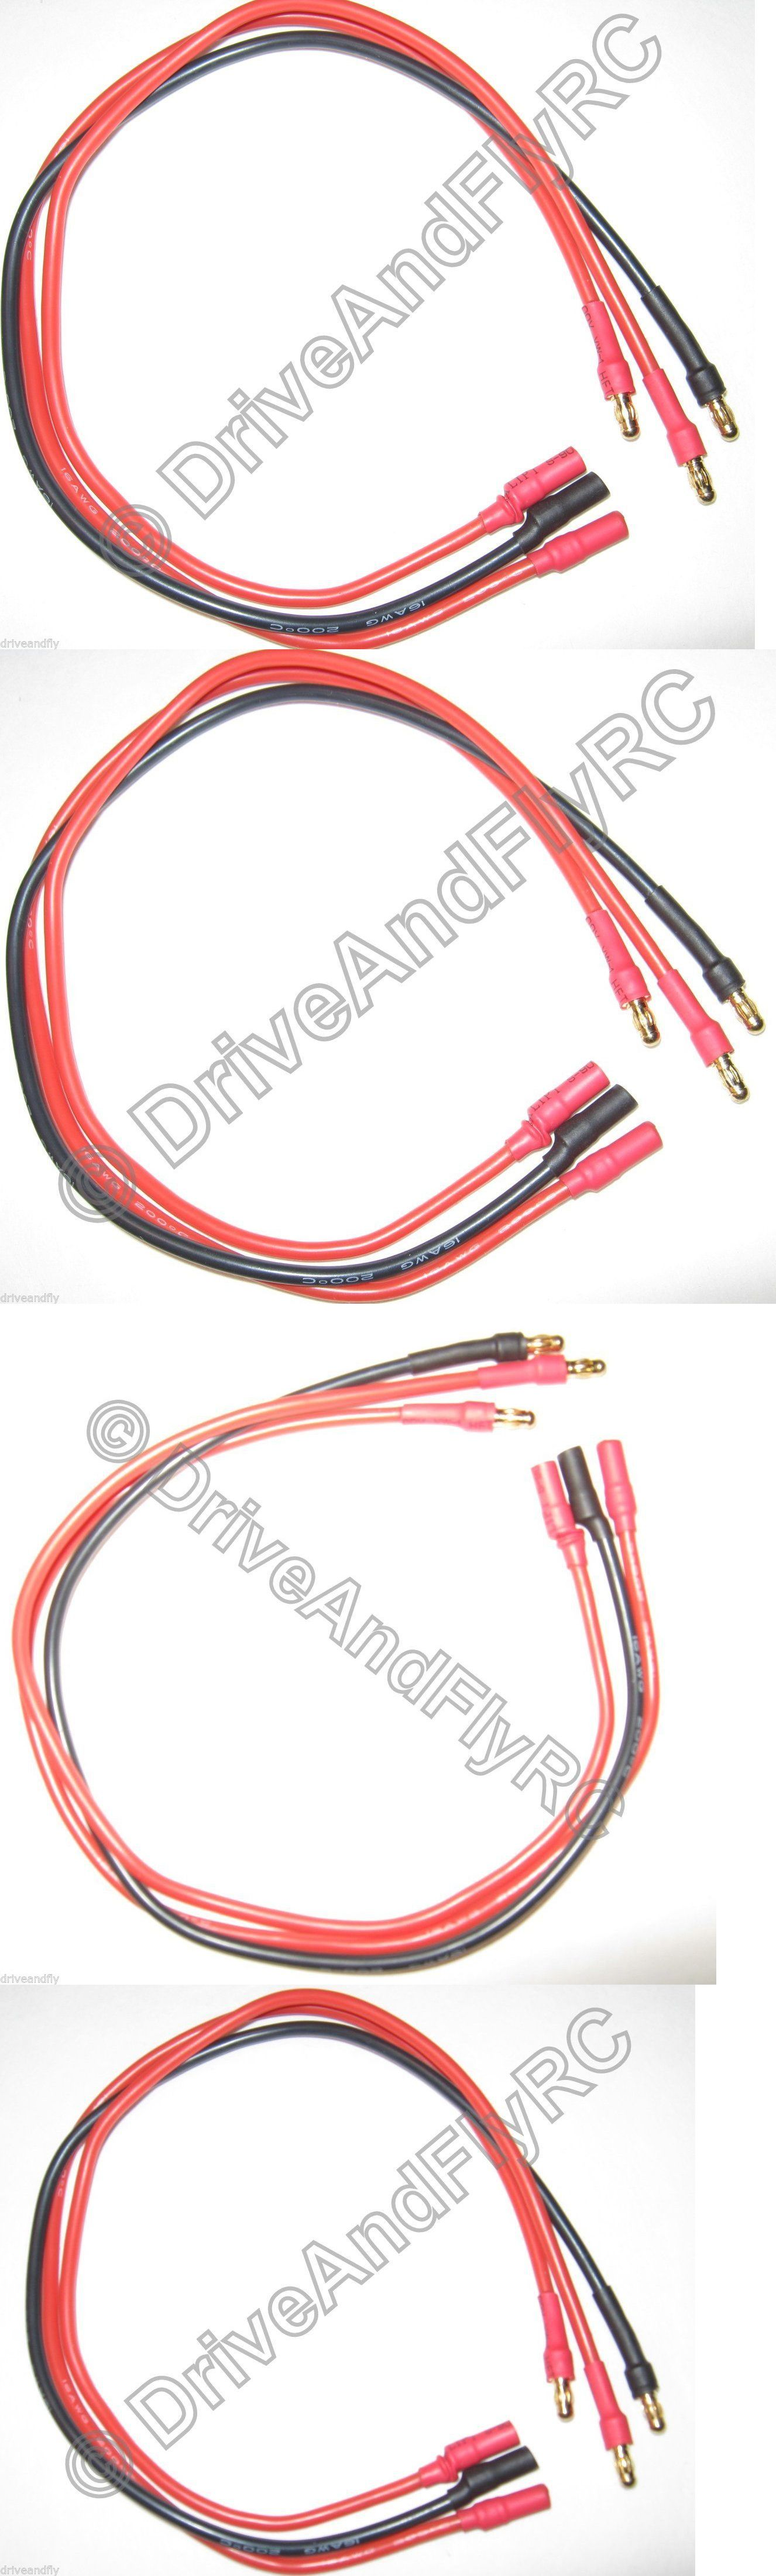 switches connectors and wires 182178 male to female motor esc extension 30cm 35mm bullet connectors 16awg wire 300mm \u003e buy it now only 1199 on ebay stpinterest